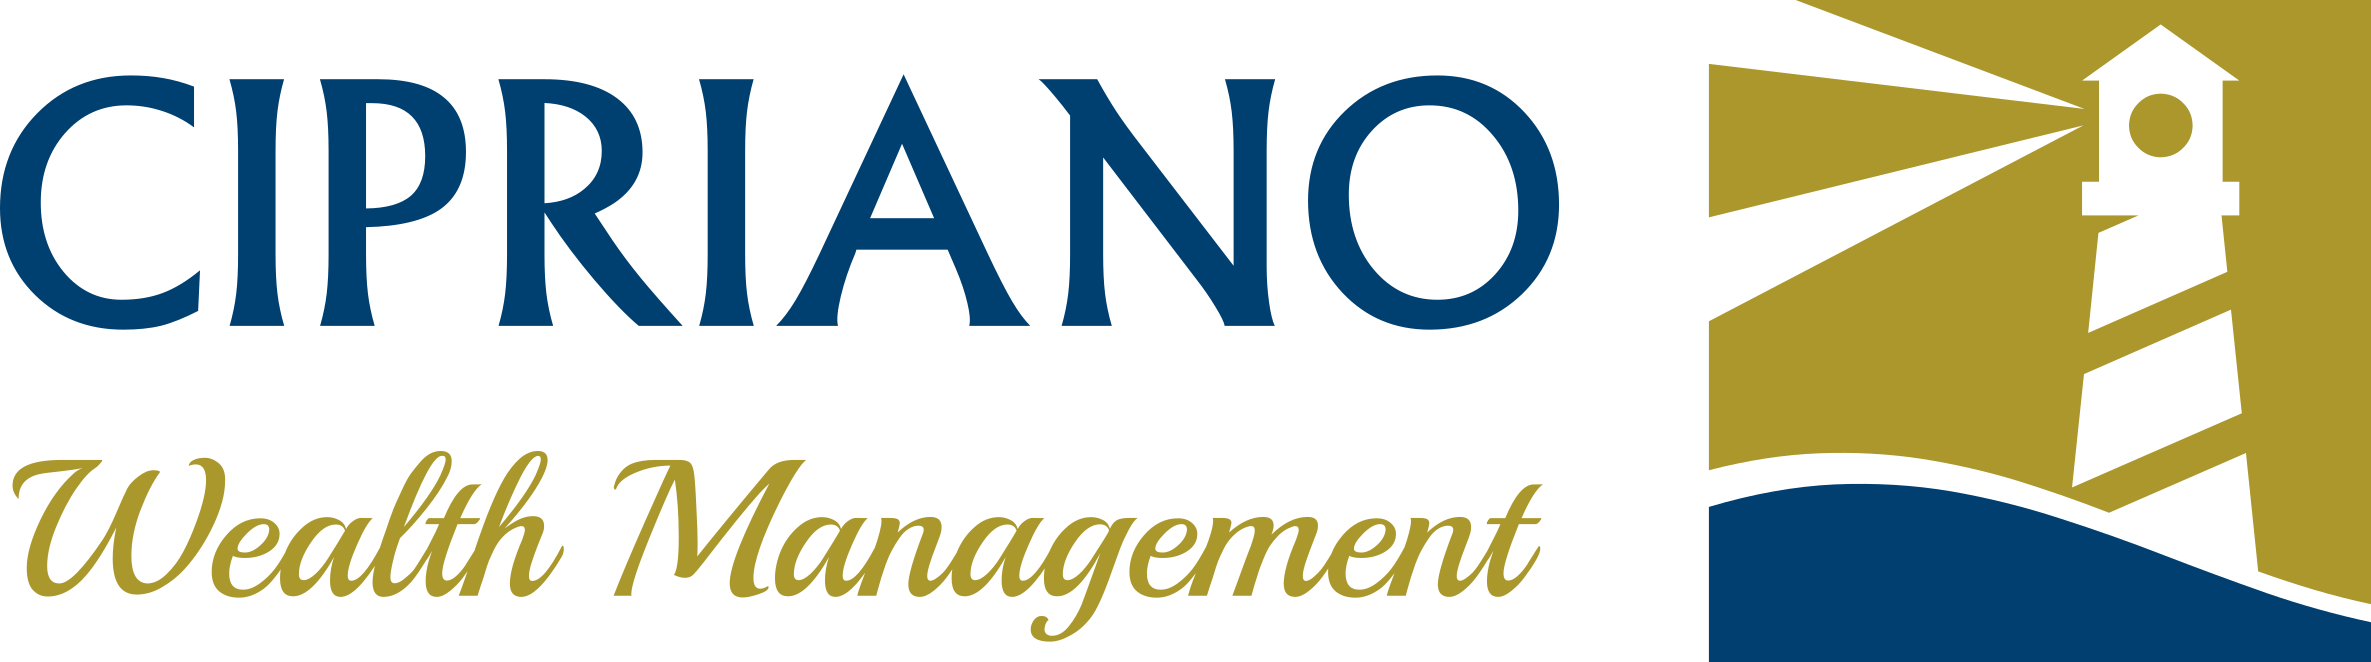 Logo for Cipriano Wealth Management